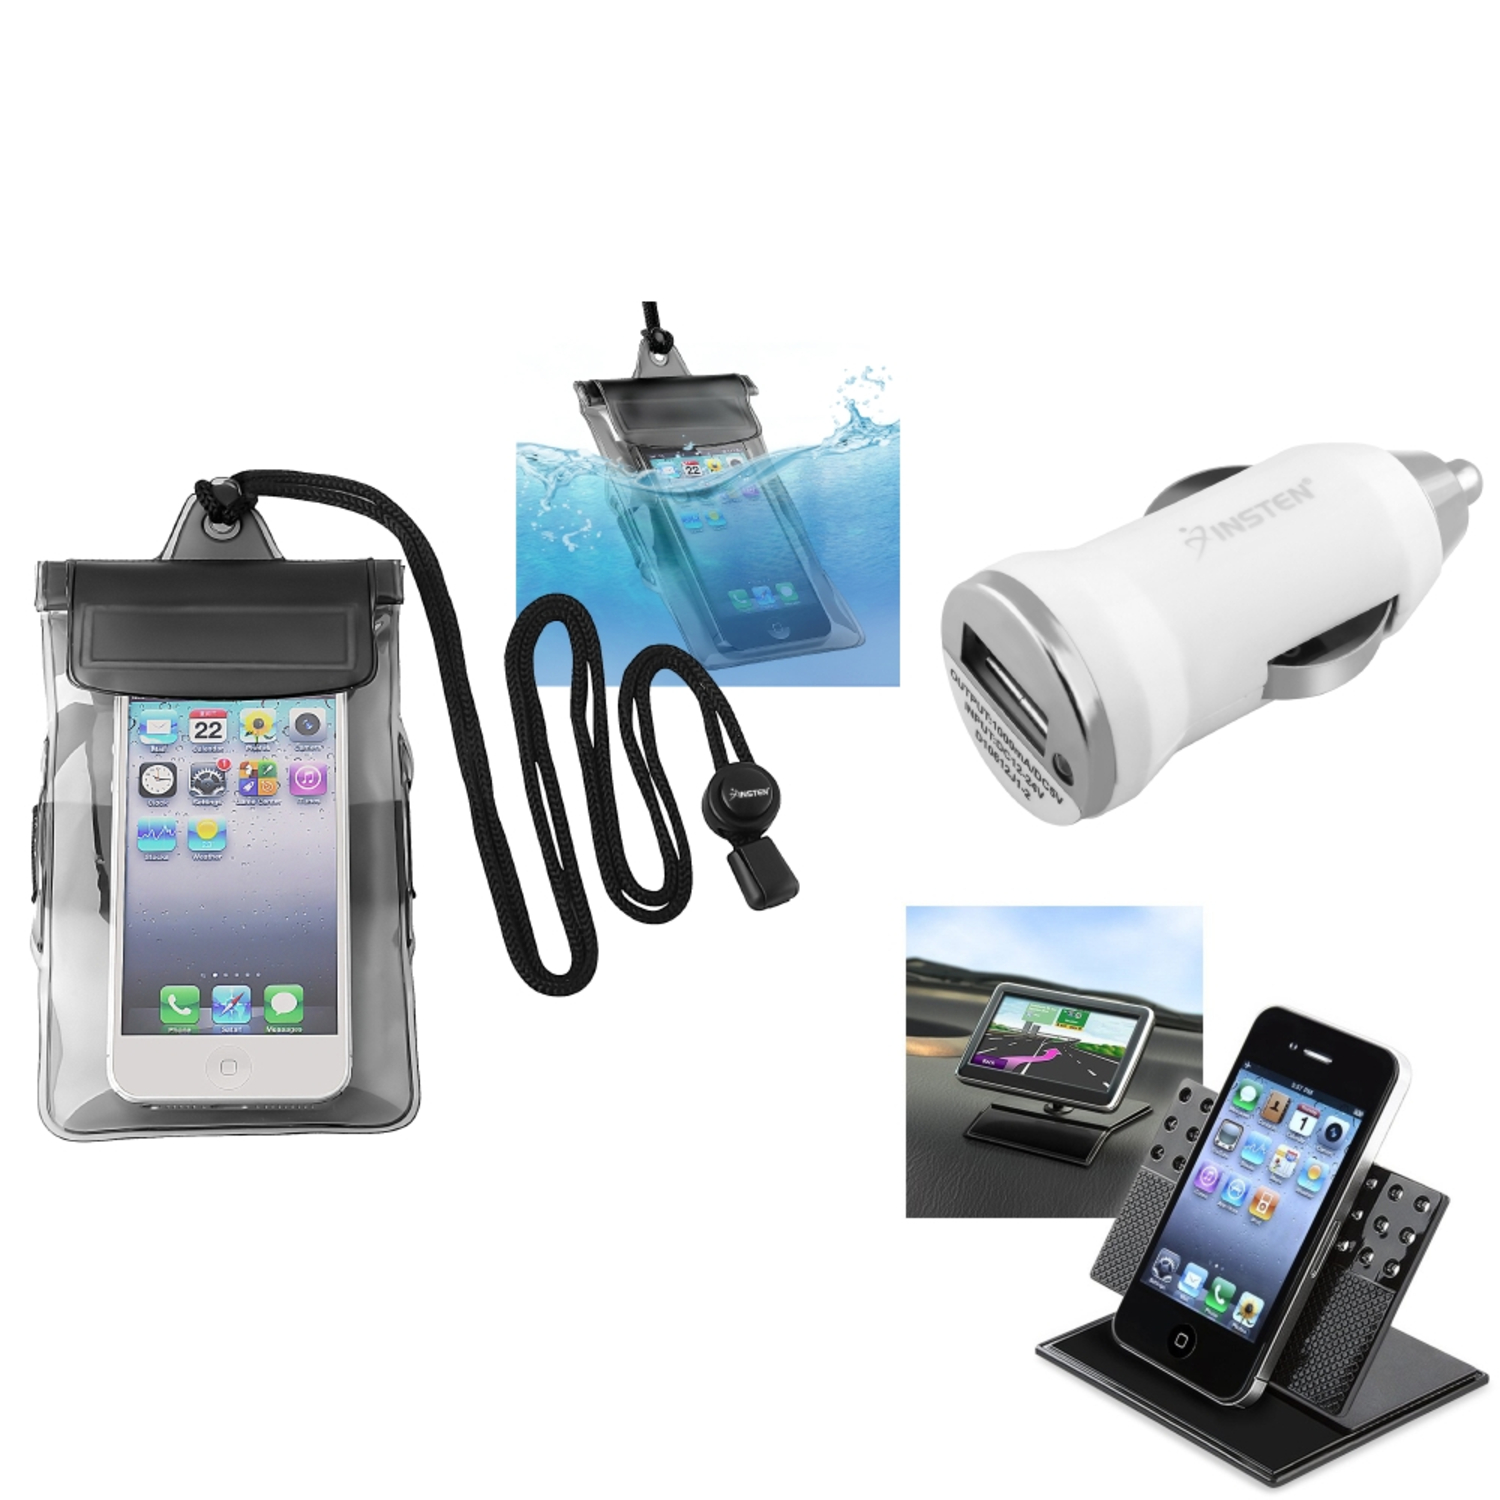 Insten Black Waterproof Bag Case Charger Car Holder For iPod Touch 1 2 3 5 5G 5th Gen